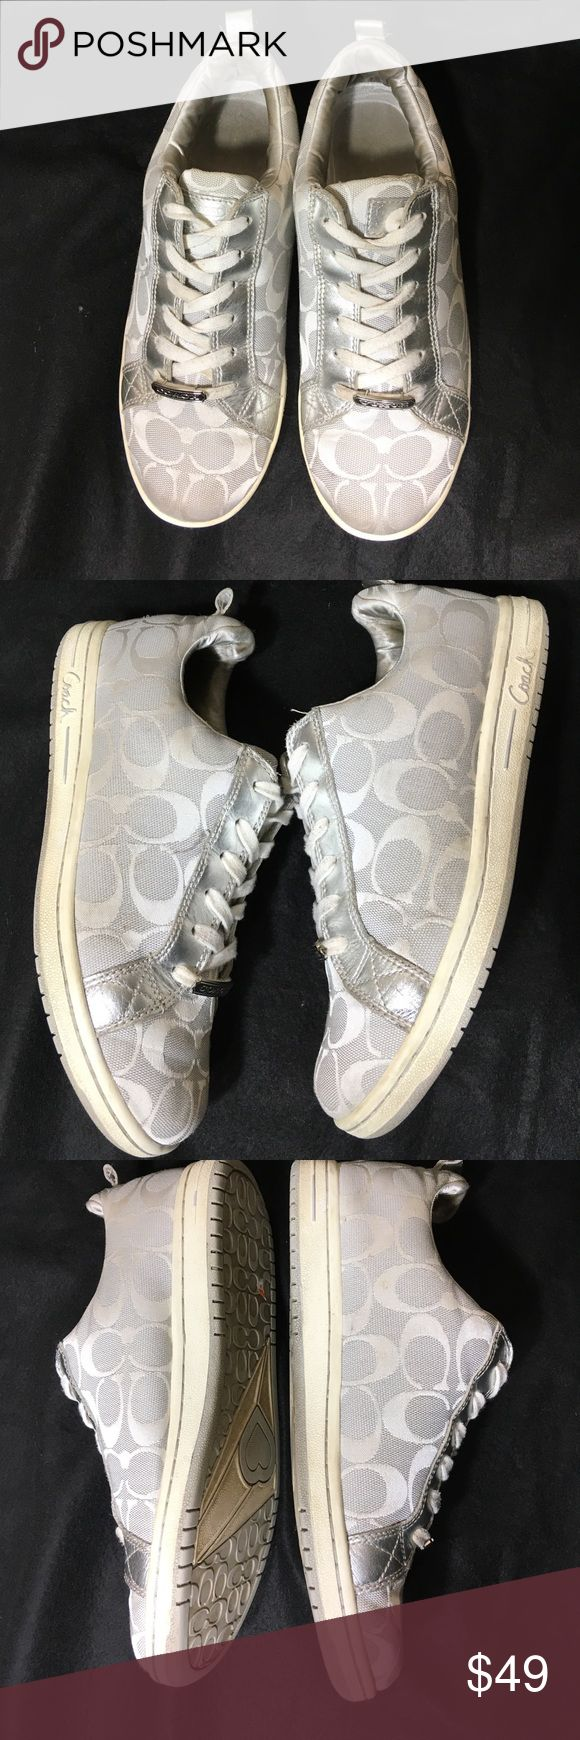 Coach Sneakers Metallic silver coach sneakers are in excellent condition. Only worn a few times. Bottoms will be clean before shipping. Silver and white monogram. Coach Shoes Sneakers